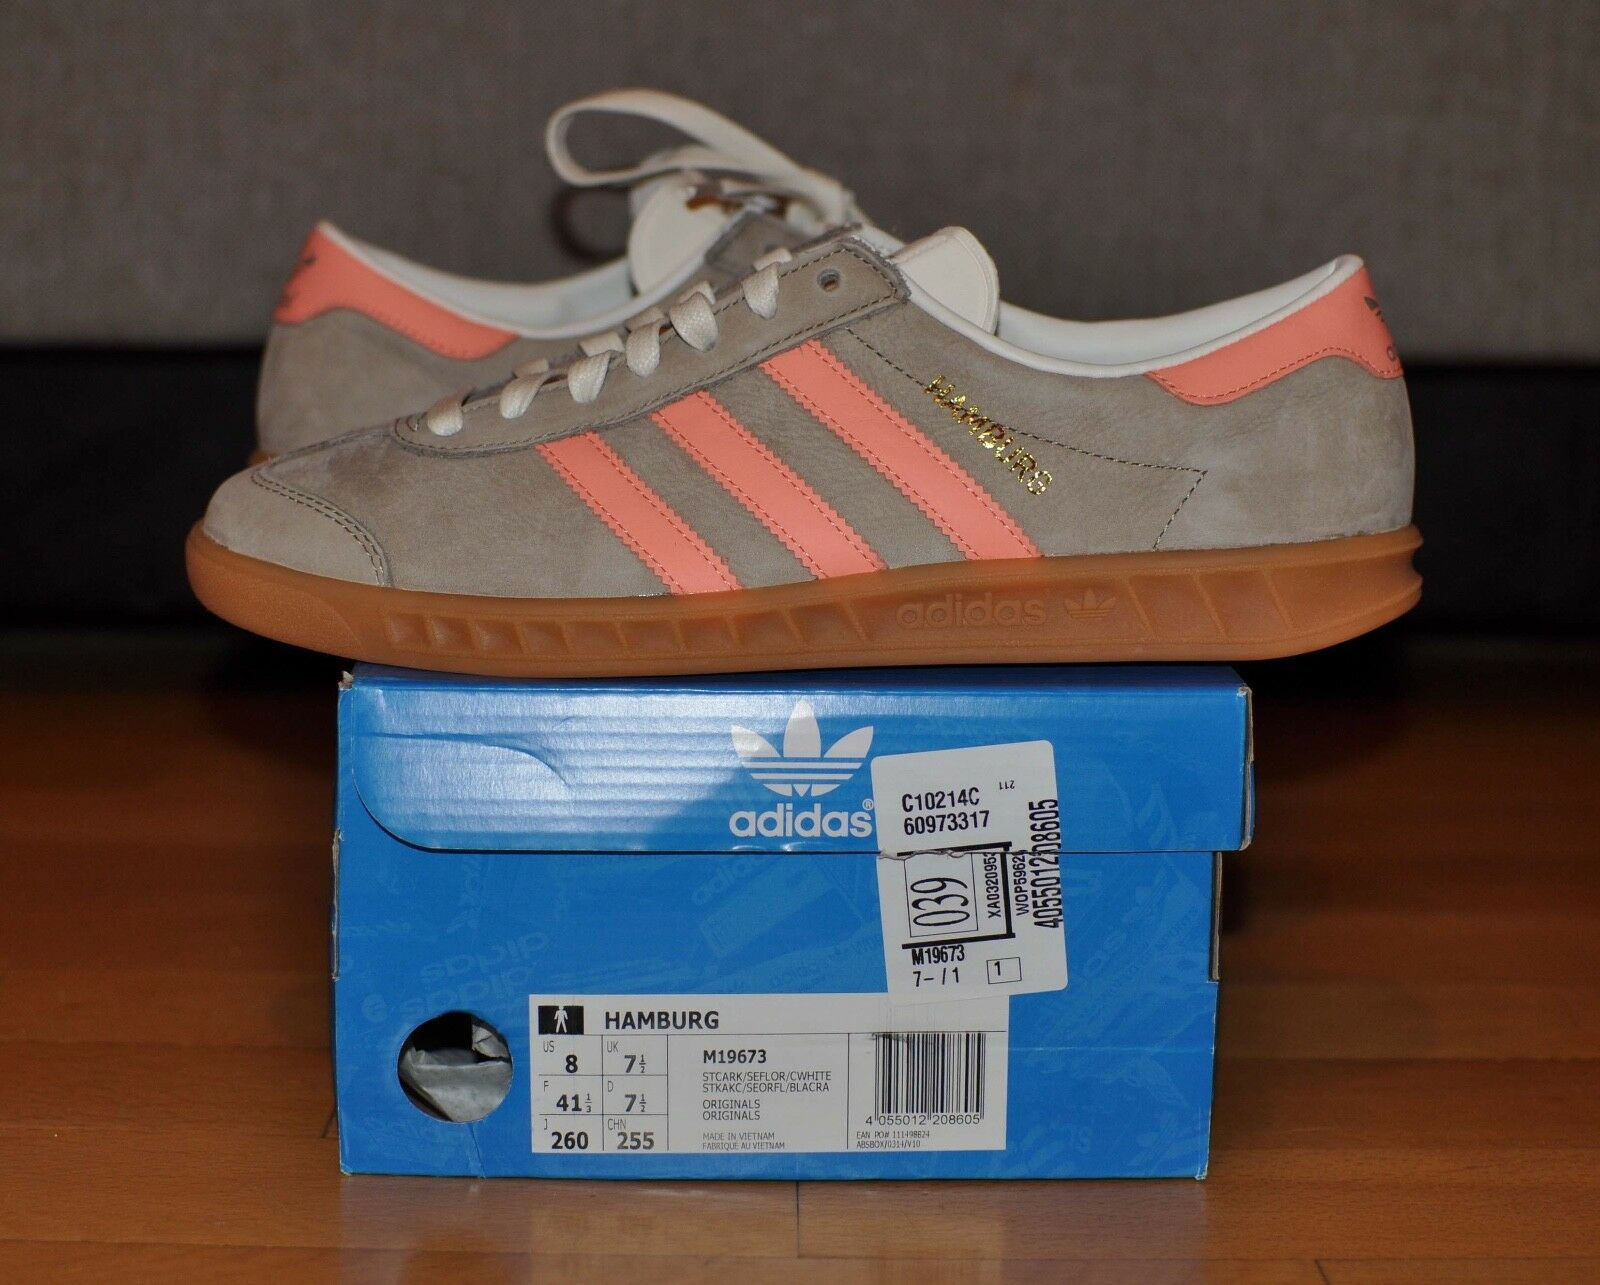 Adidas Adidas Adidas Hamburg M19673 Cargo Khaki Semi Flash orange Chalk White stockholm 0c0e1e